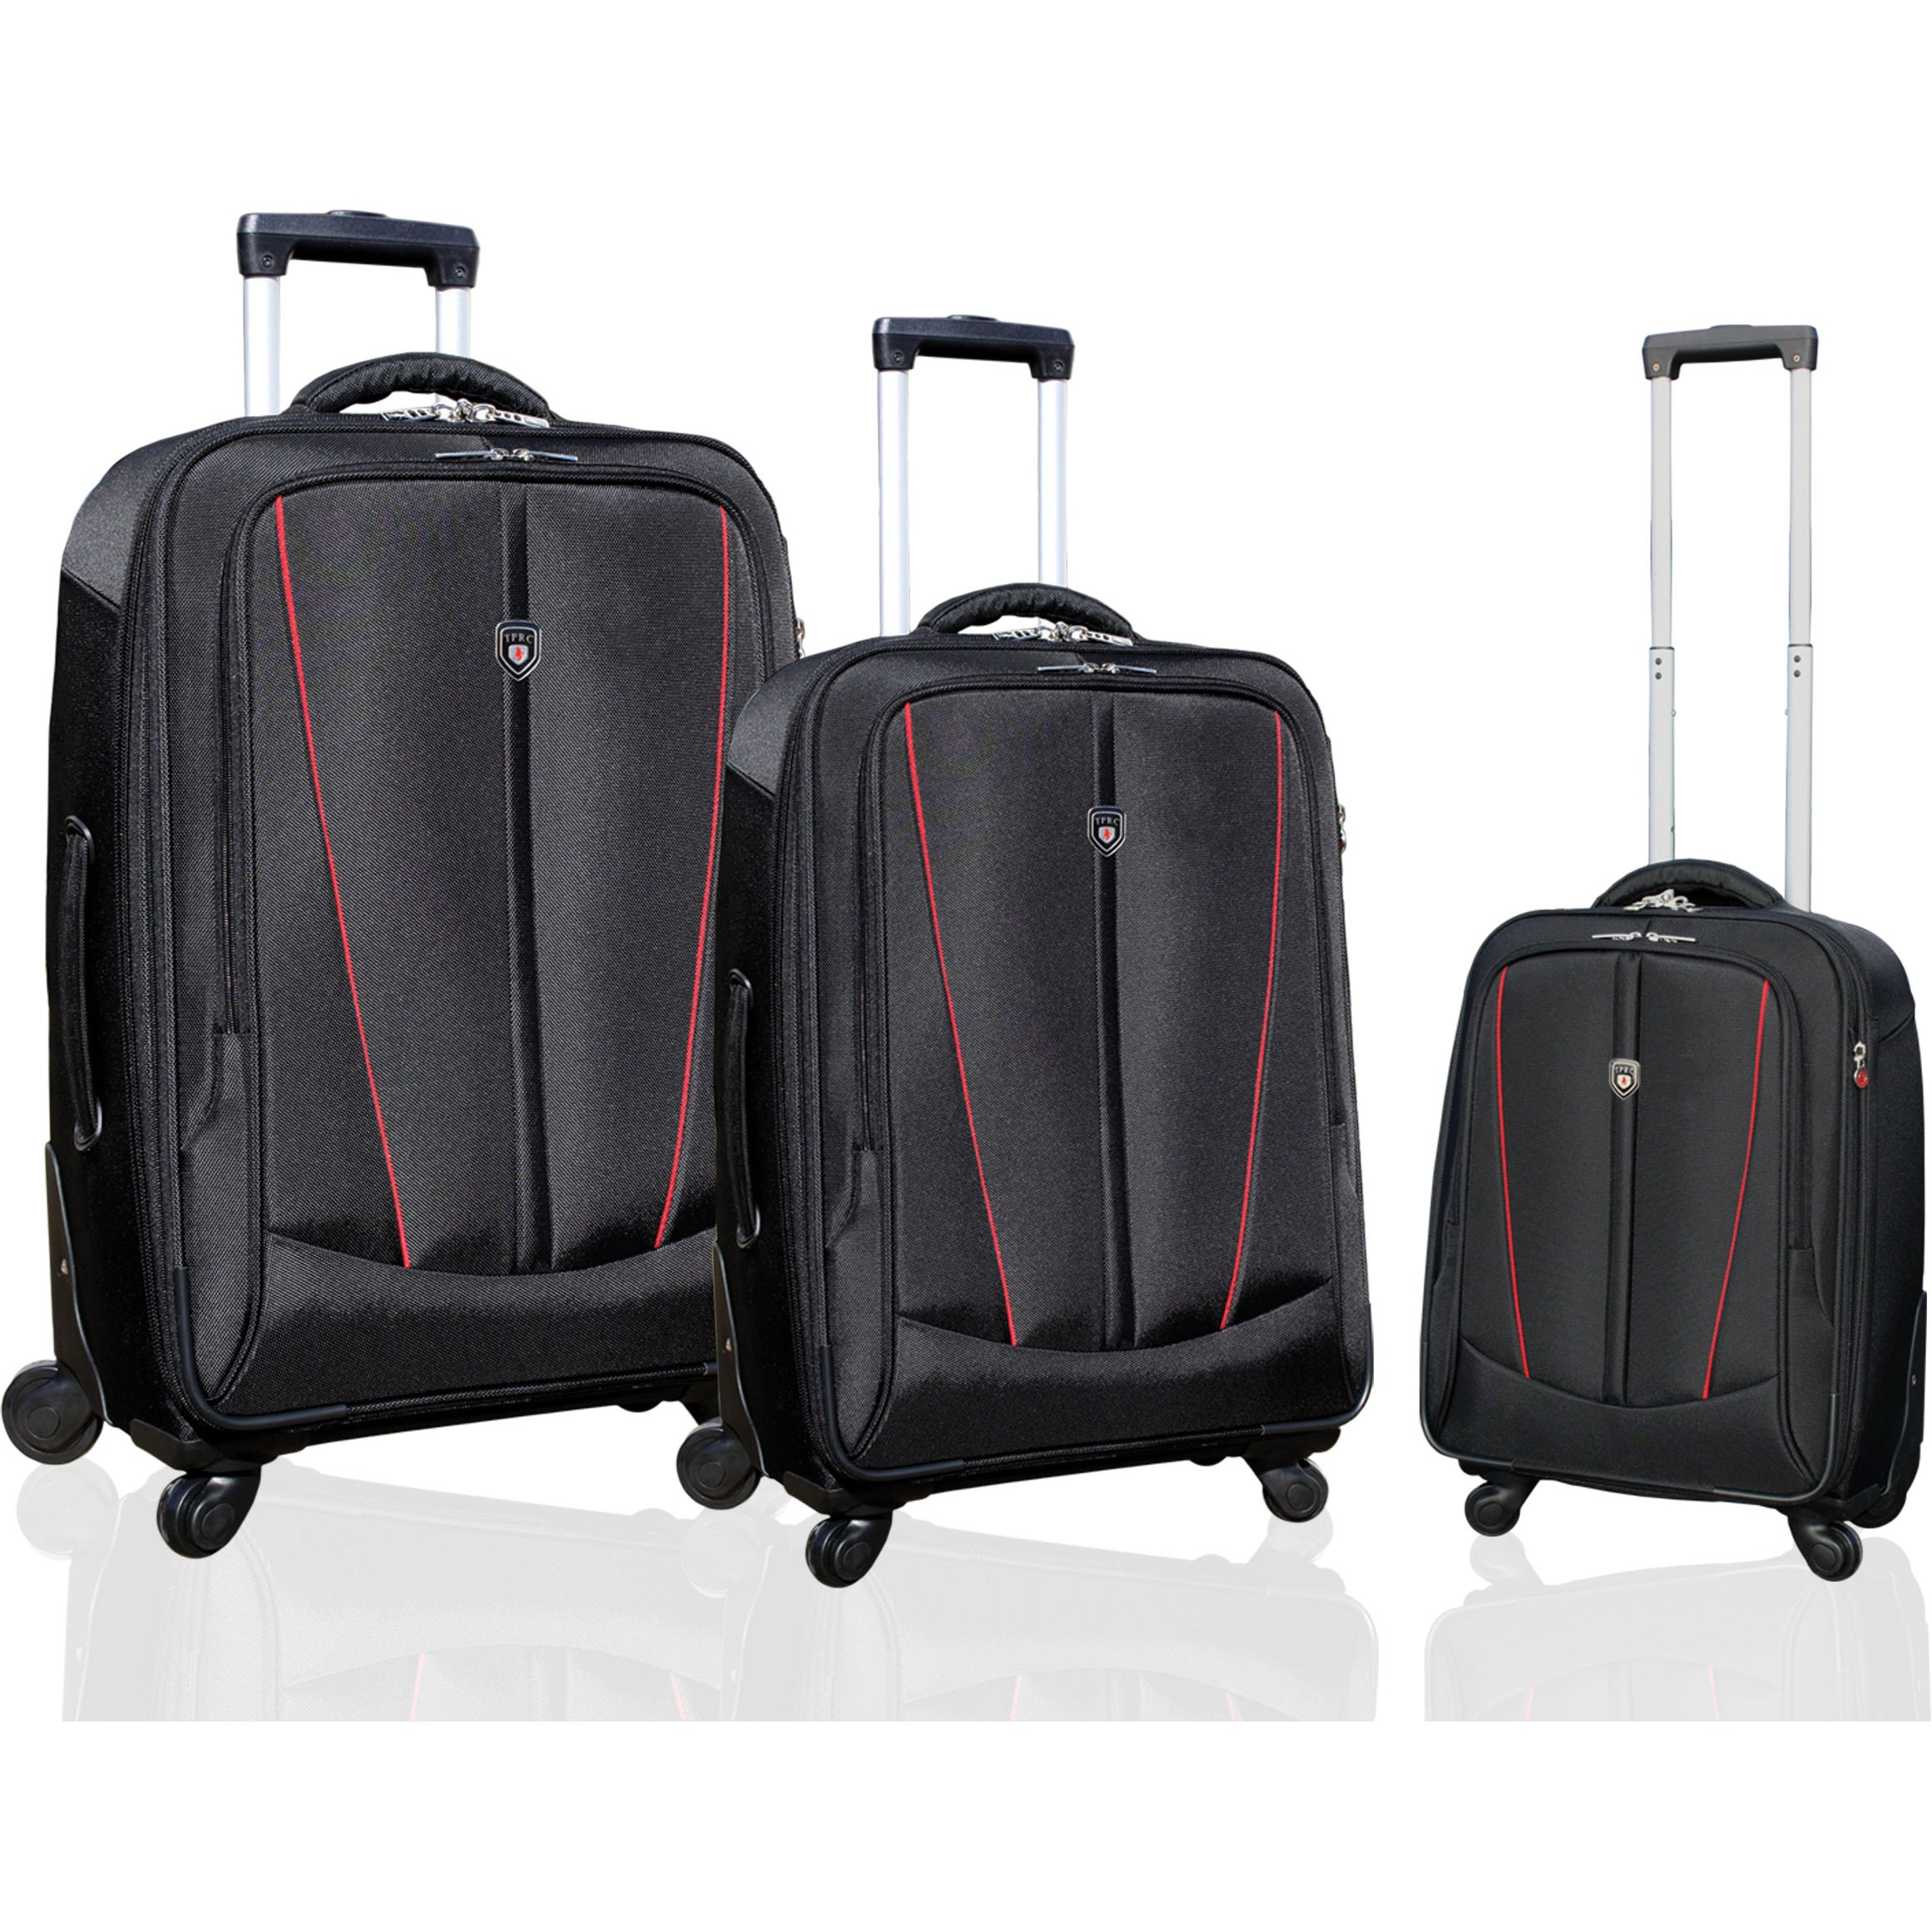 Traveler's Club Luggage Traveler's Club Silhouette Collection 3-piece Heavy Duty Spinner Luggage Set at Sears.com